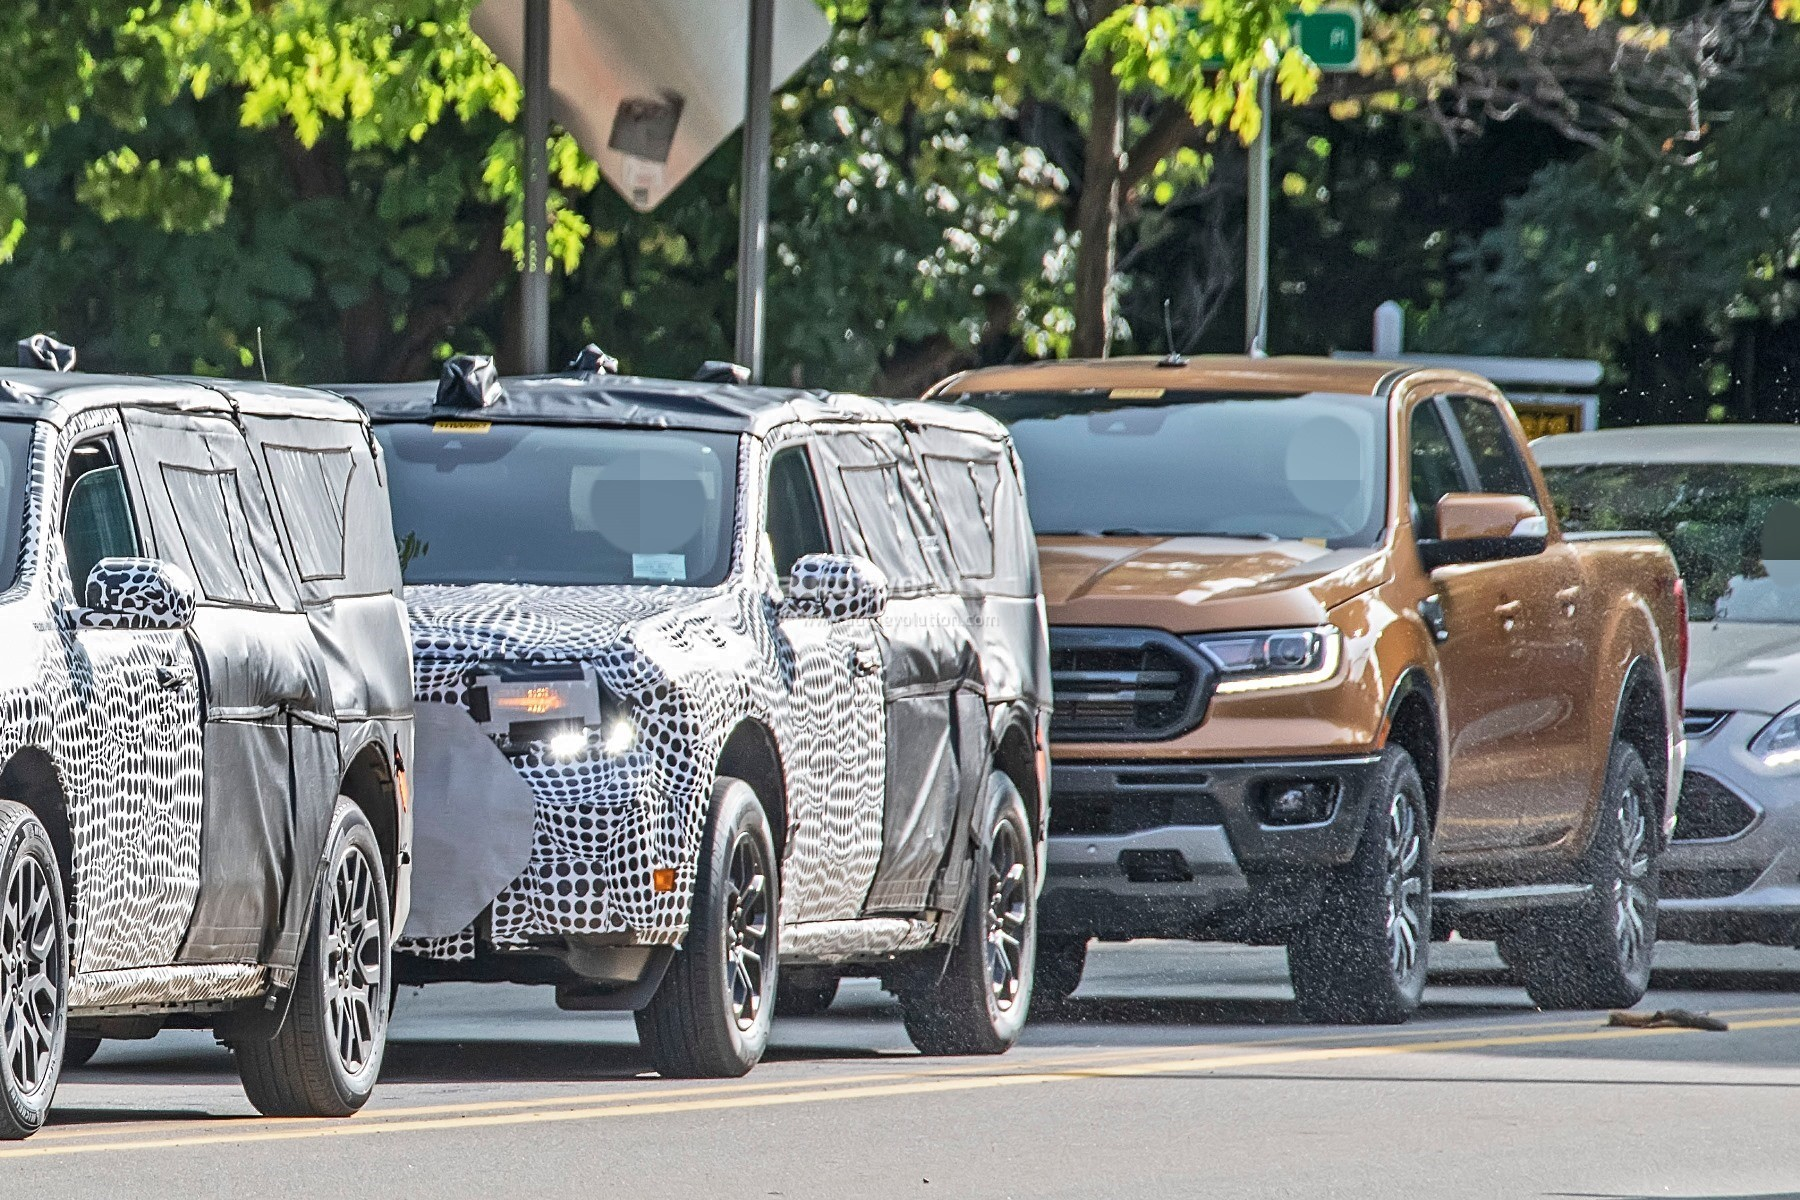 2022 Ford Maverick Pickup Truck Spied Testing With Bigger ...